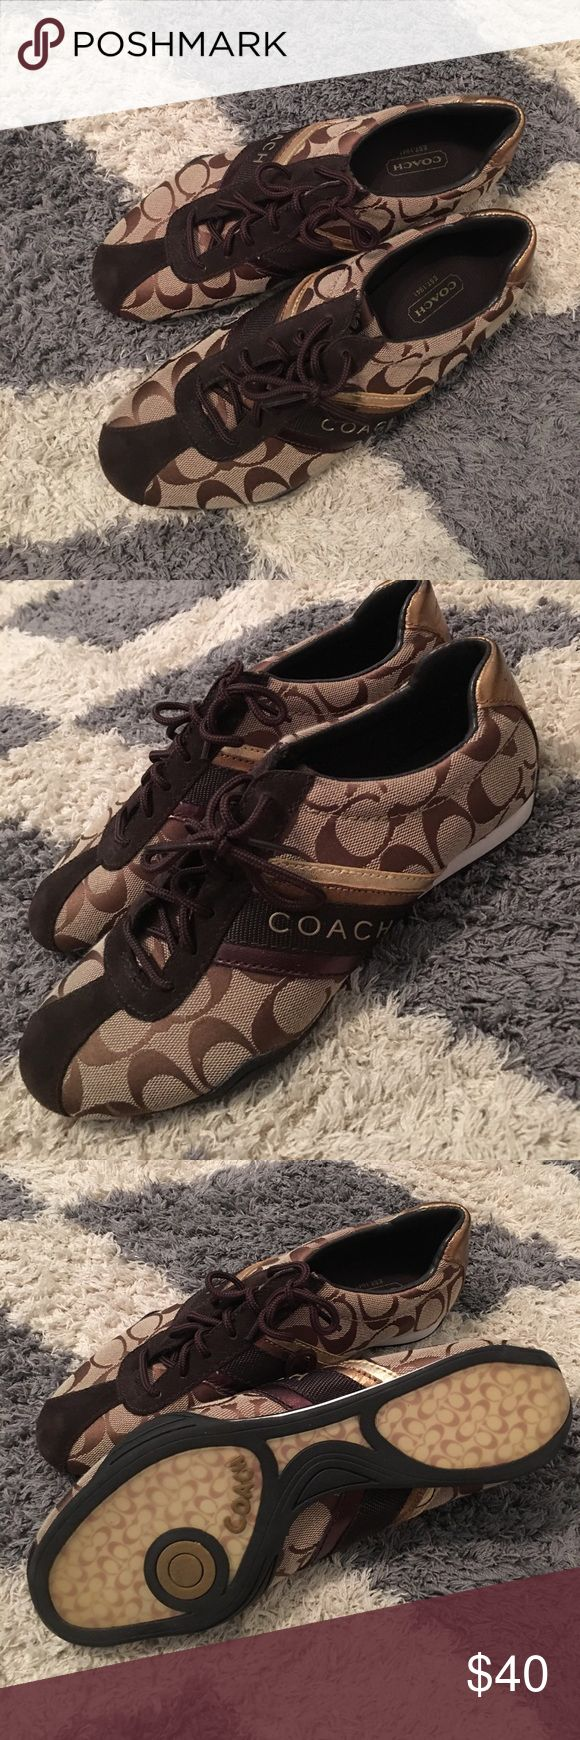 Coach tennis shoes Only worn once coach tennis shoes Coach Shoes Sneakers